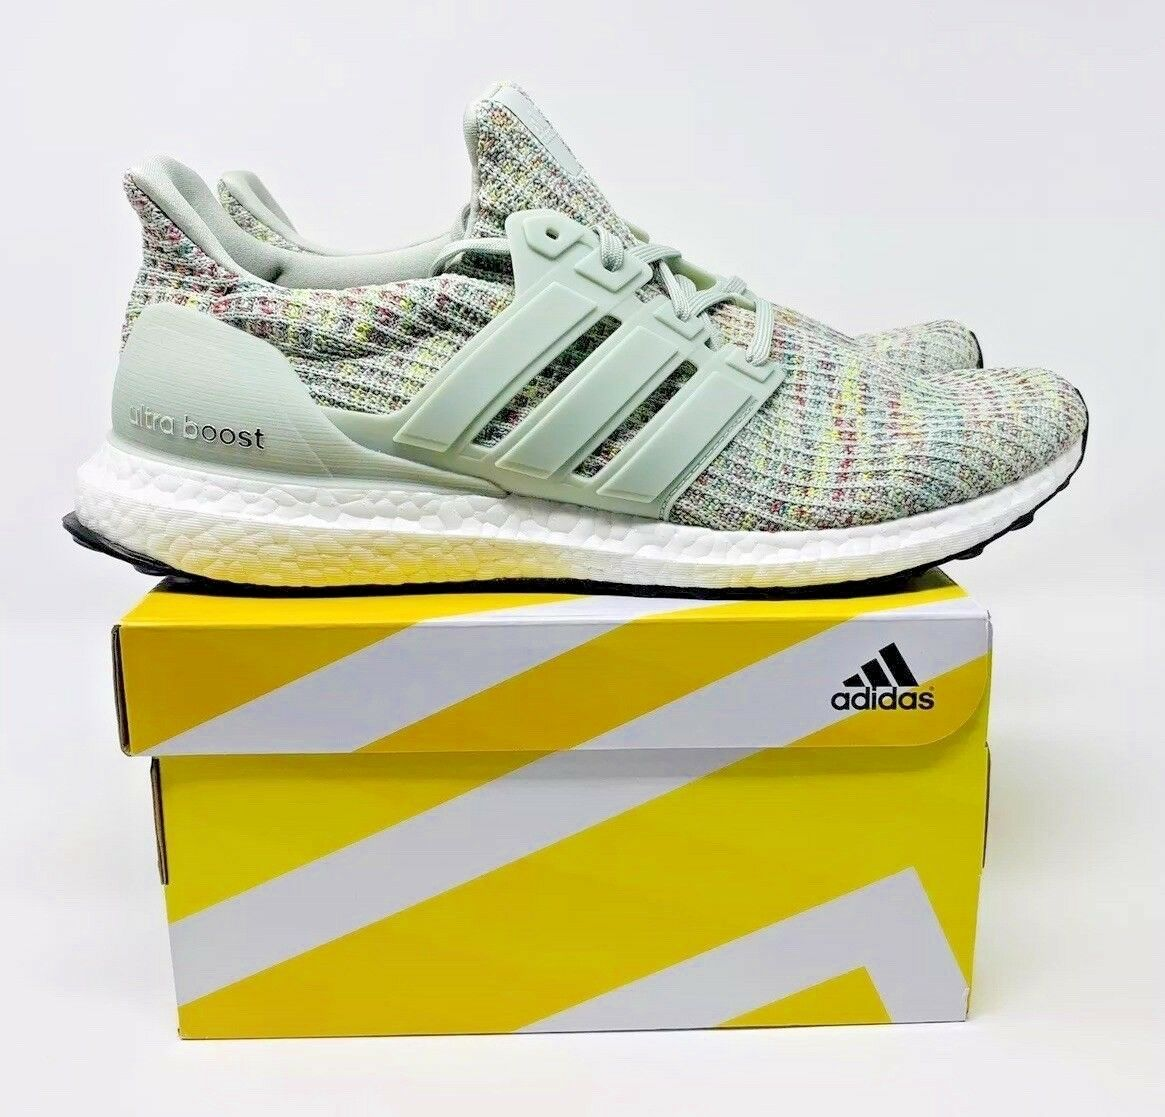 3fa244f468b ... Multi-Color Running Shoes CM8109 Men s Size 9 New Adidas Ultra Boost 4.0  Grey Multi-Color Running Shoes CM8109 Men s Size 9 New Adidas Ultra Boost  4.0 ...